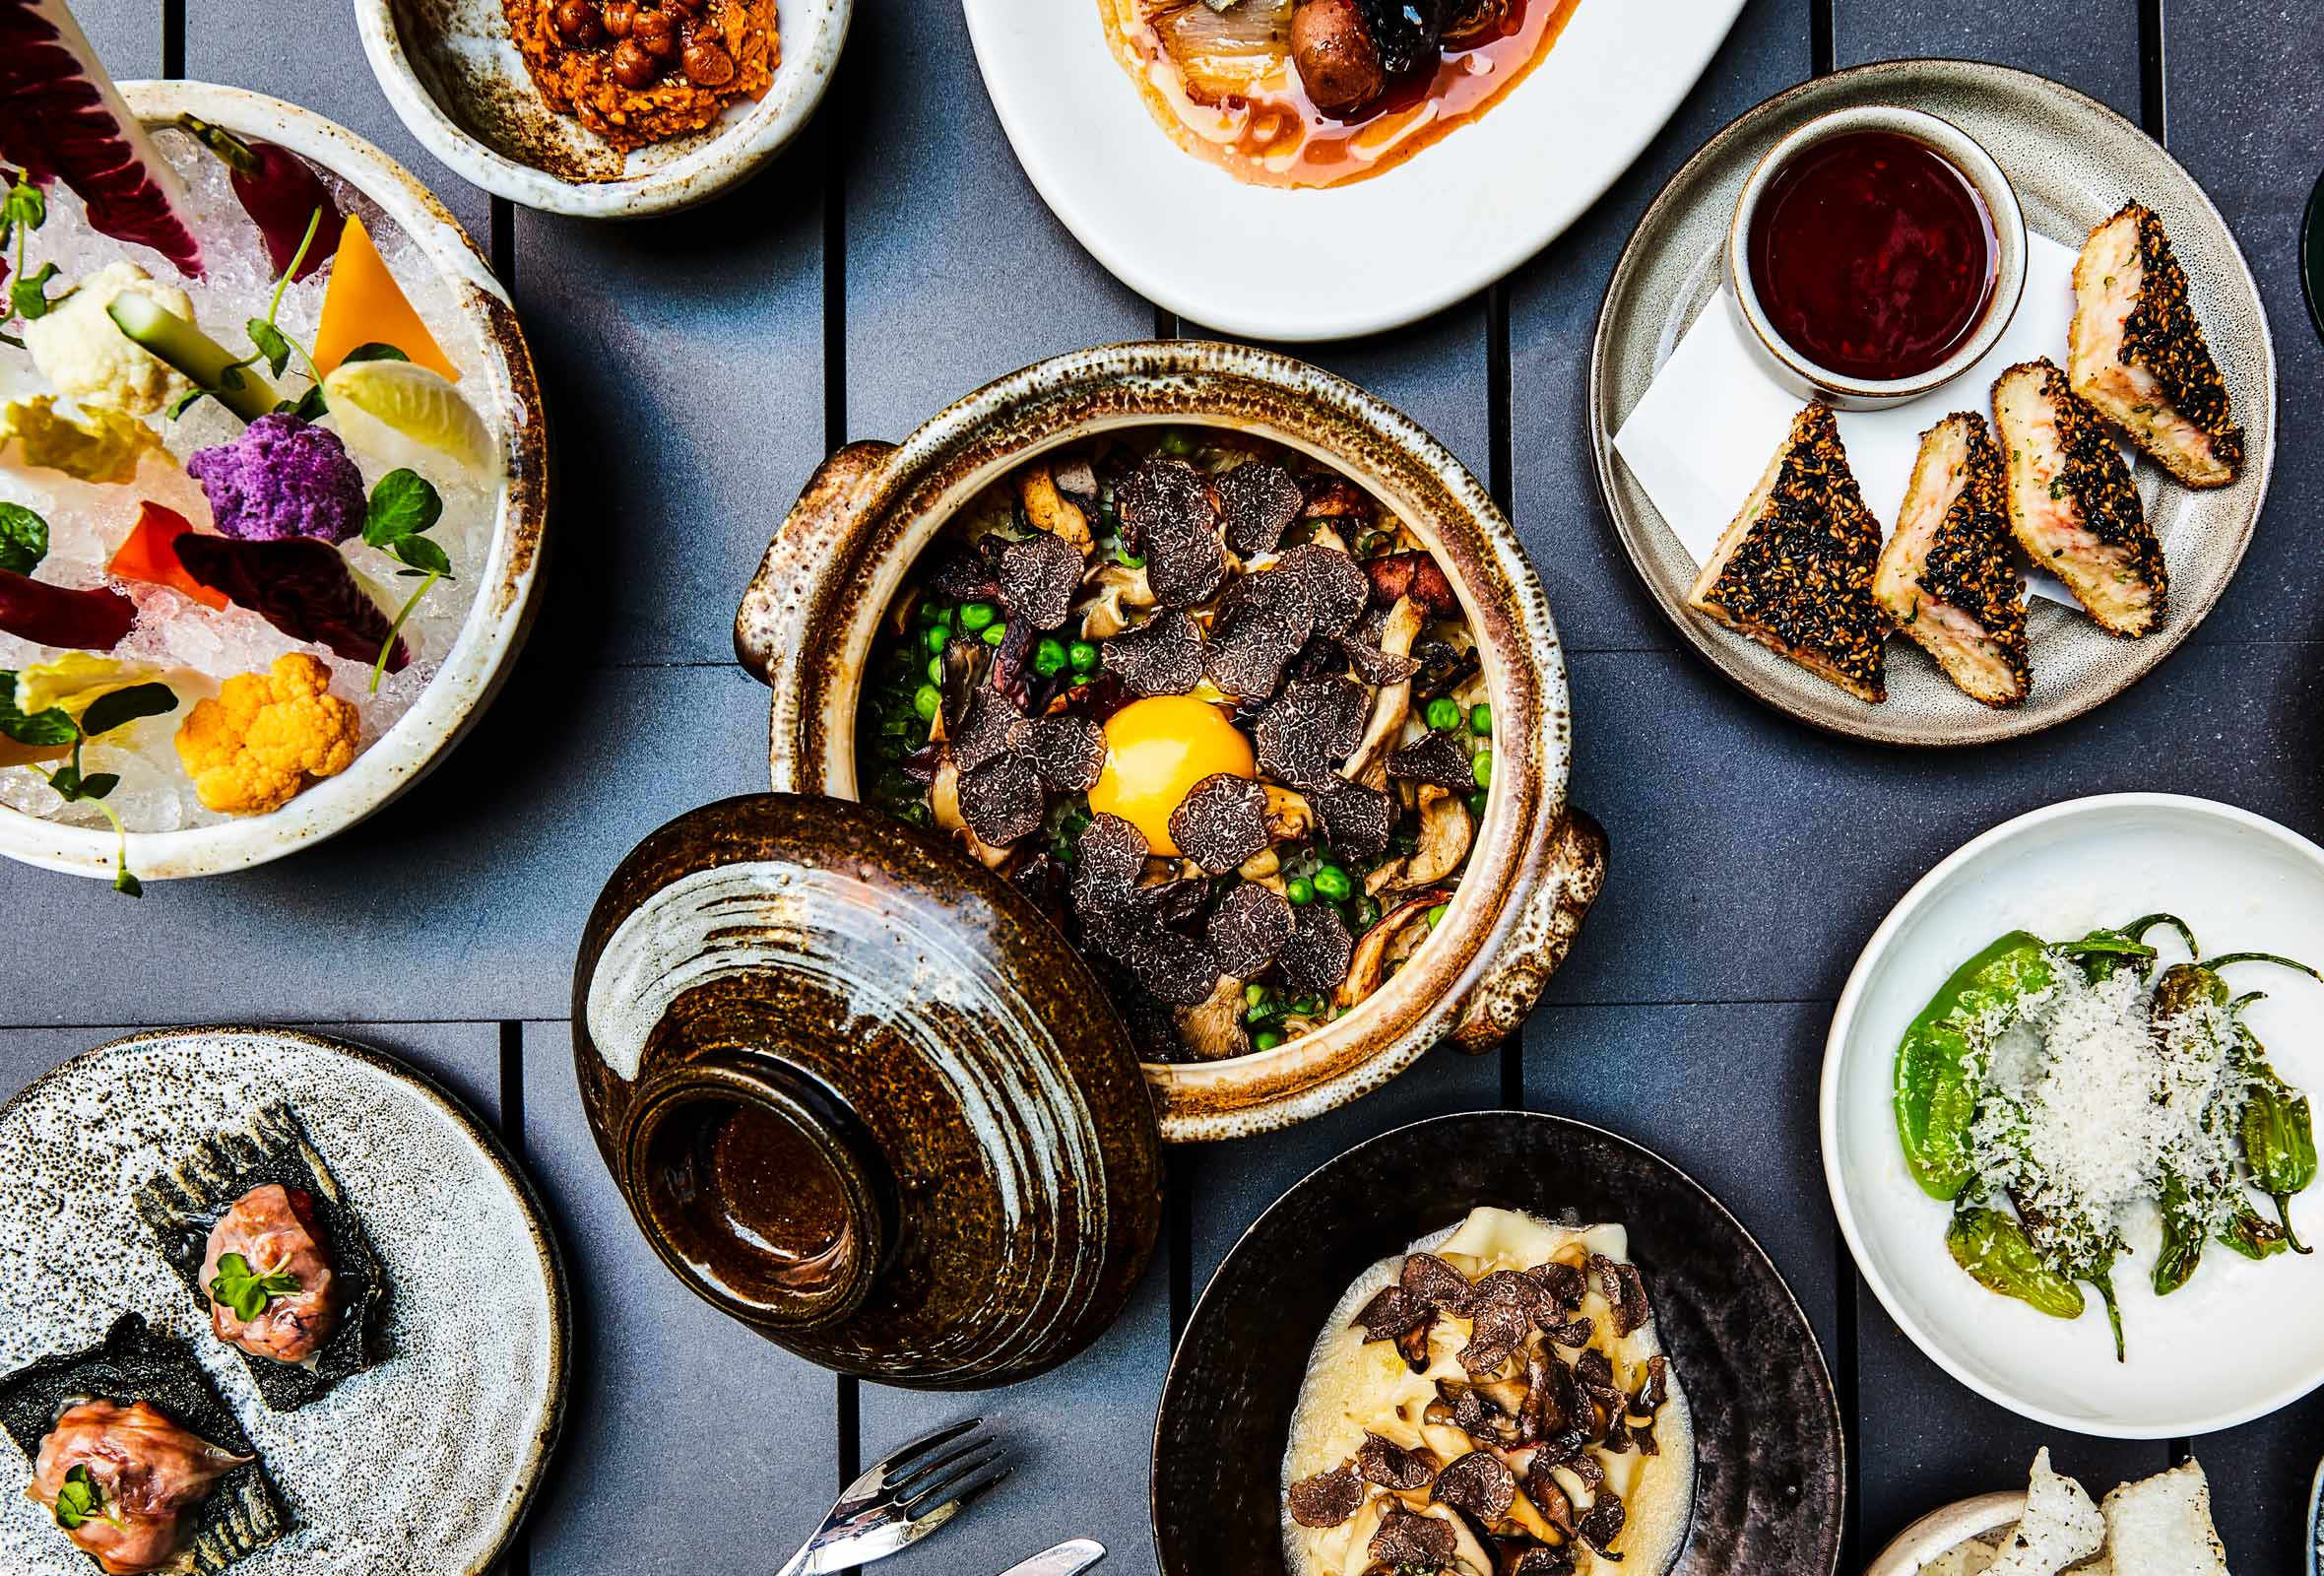 6-Course Tasting Menu at Hortus in NoMad – Per Se and Blanca Alums Reinvent Modern Asian Fine Dining